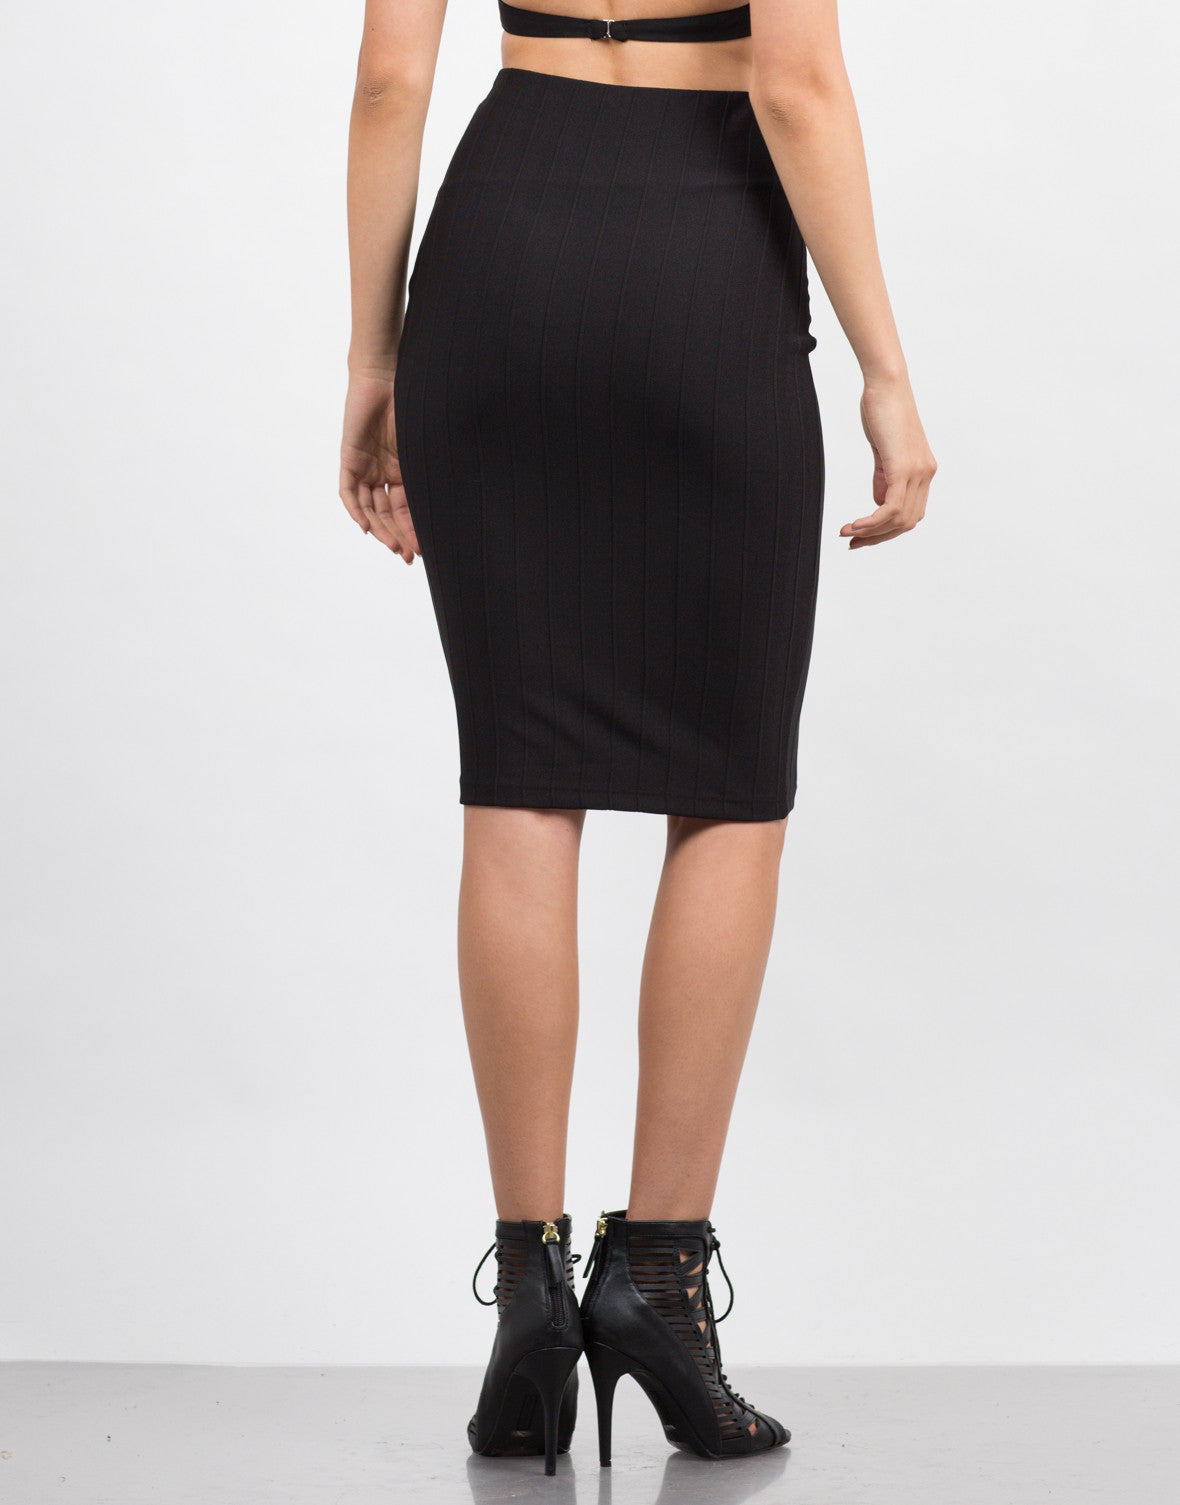 Back View of Classic Ribbed Pencil Skirt